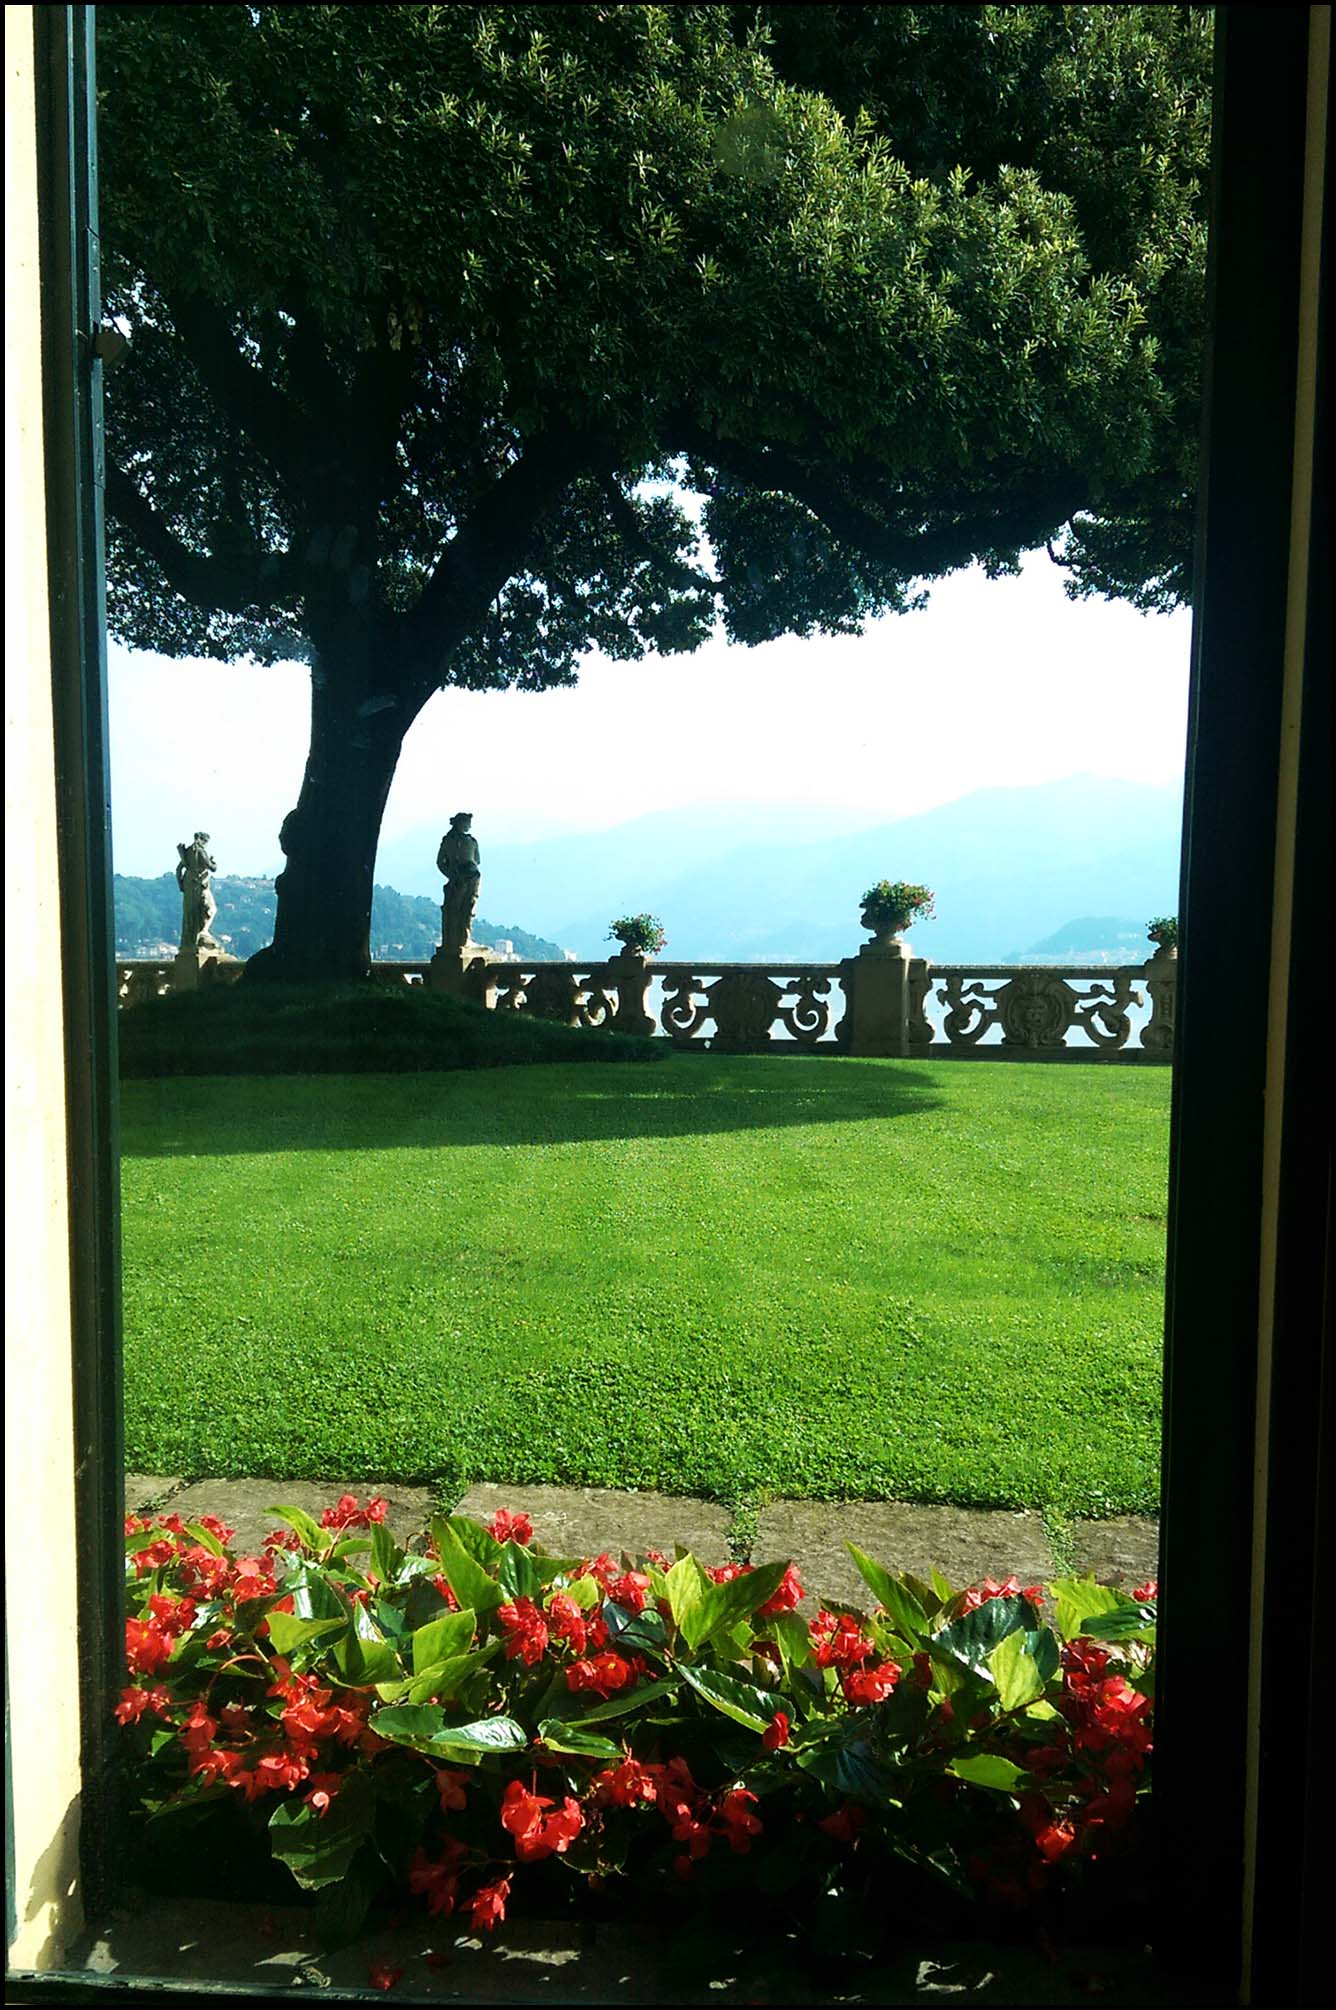 'Casino Royale' balcony view at Villa Balbianello